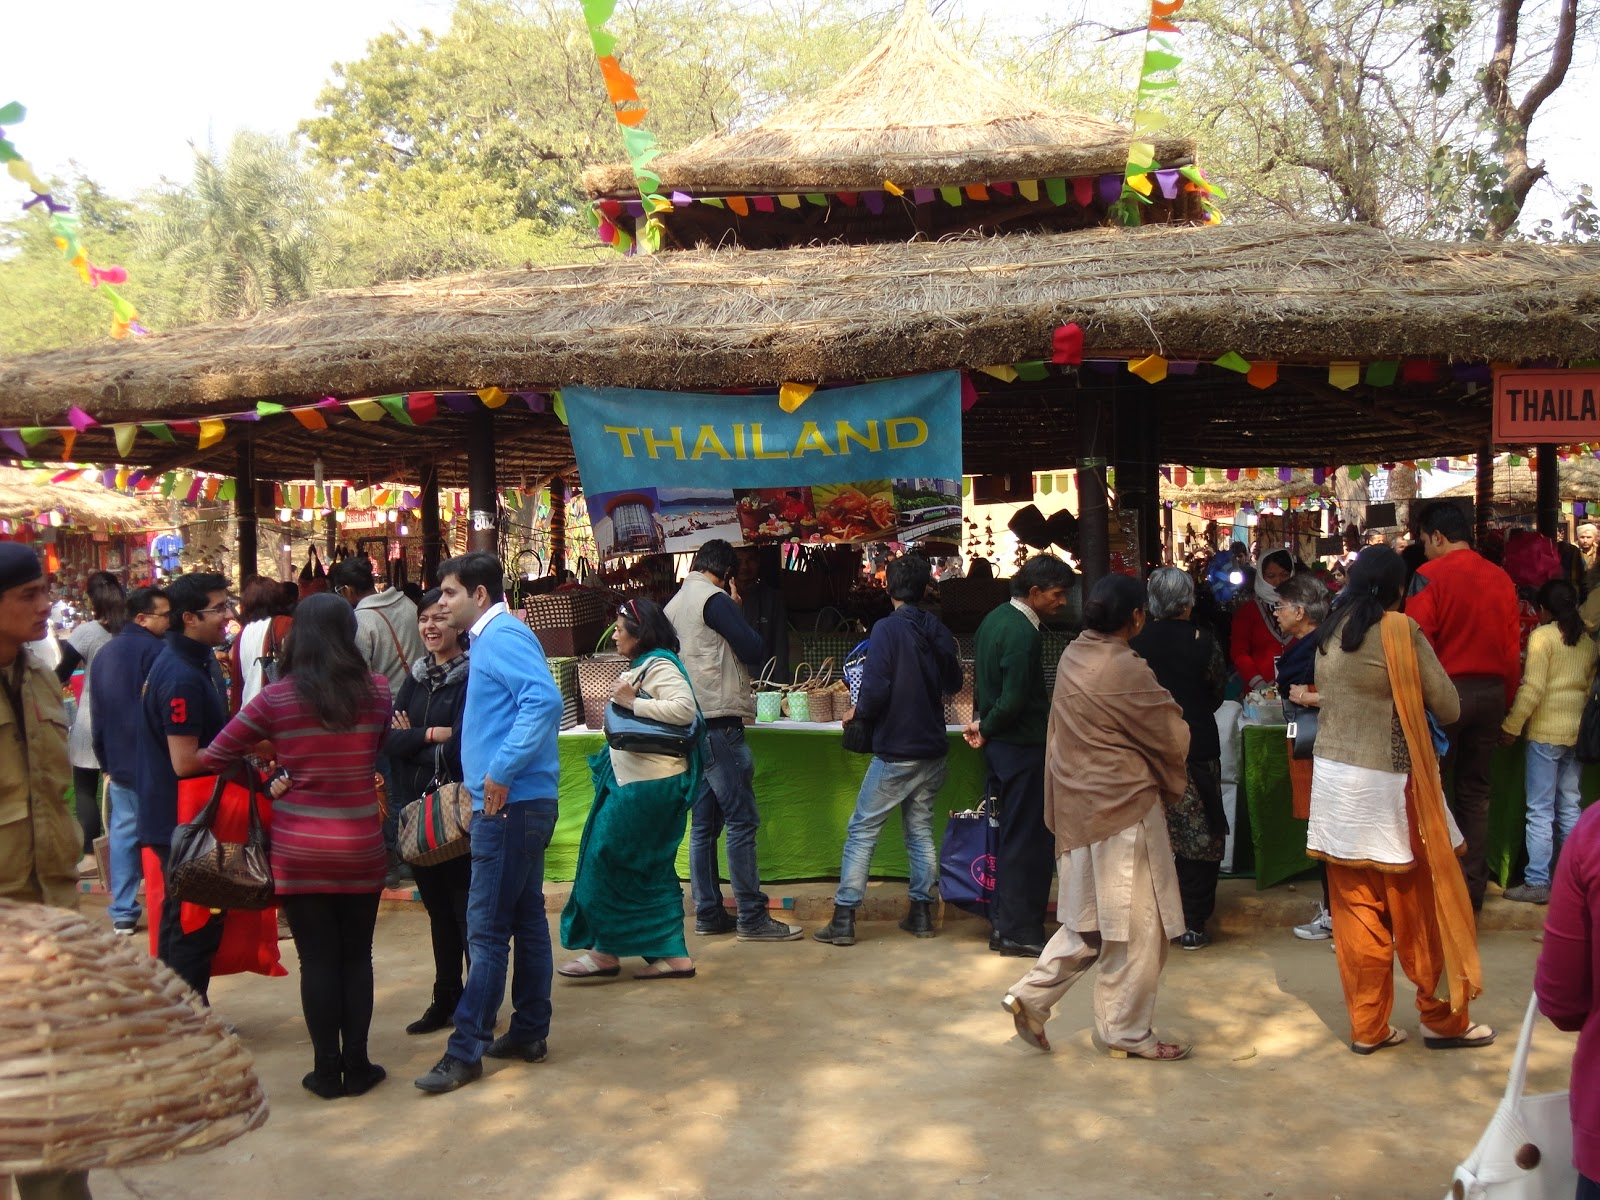 Thailand Stall at Surajkund Crafts Mela ,India